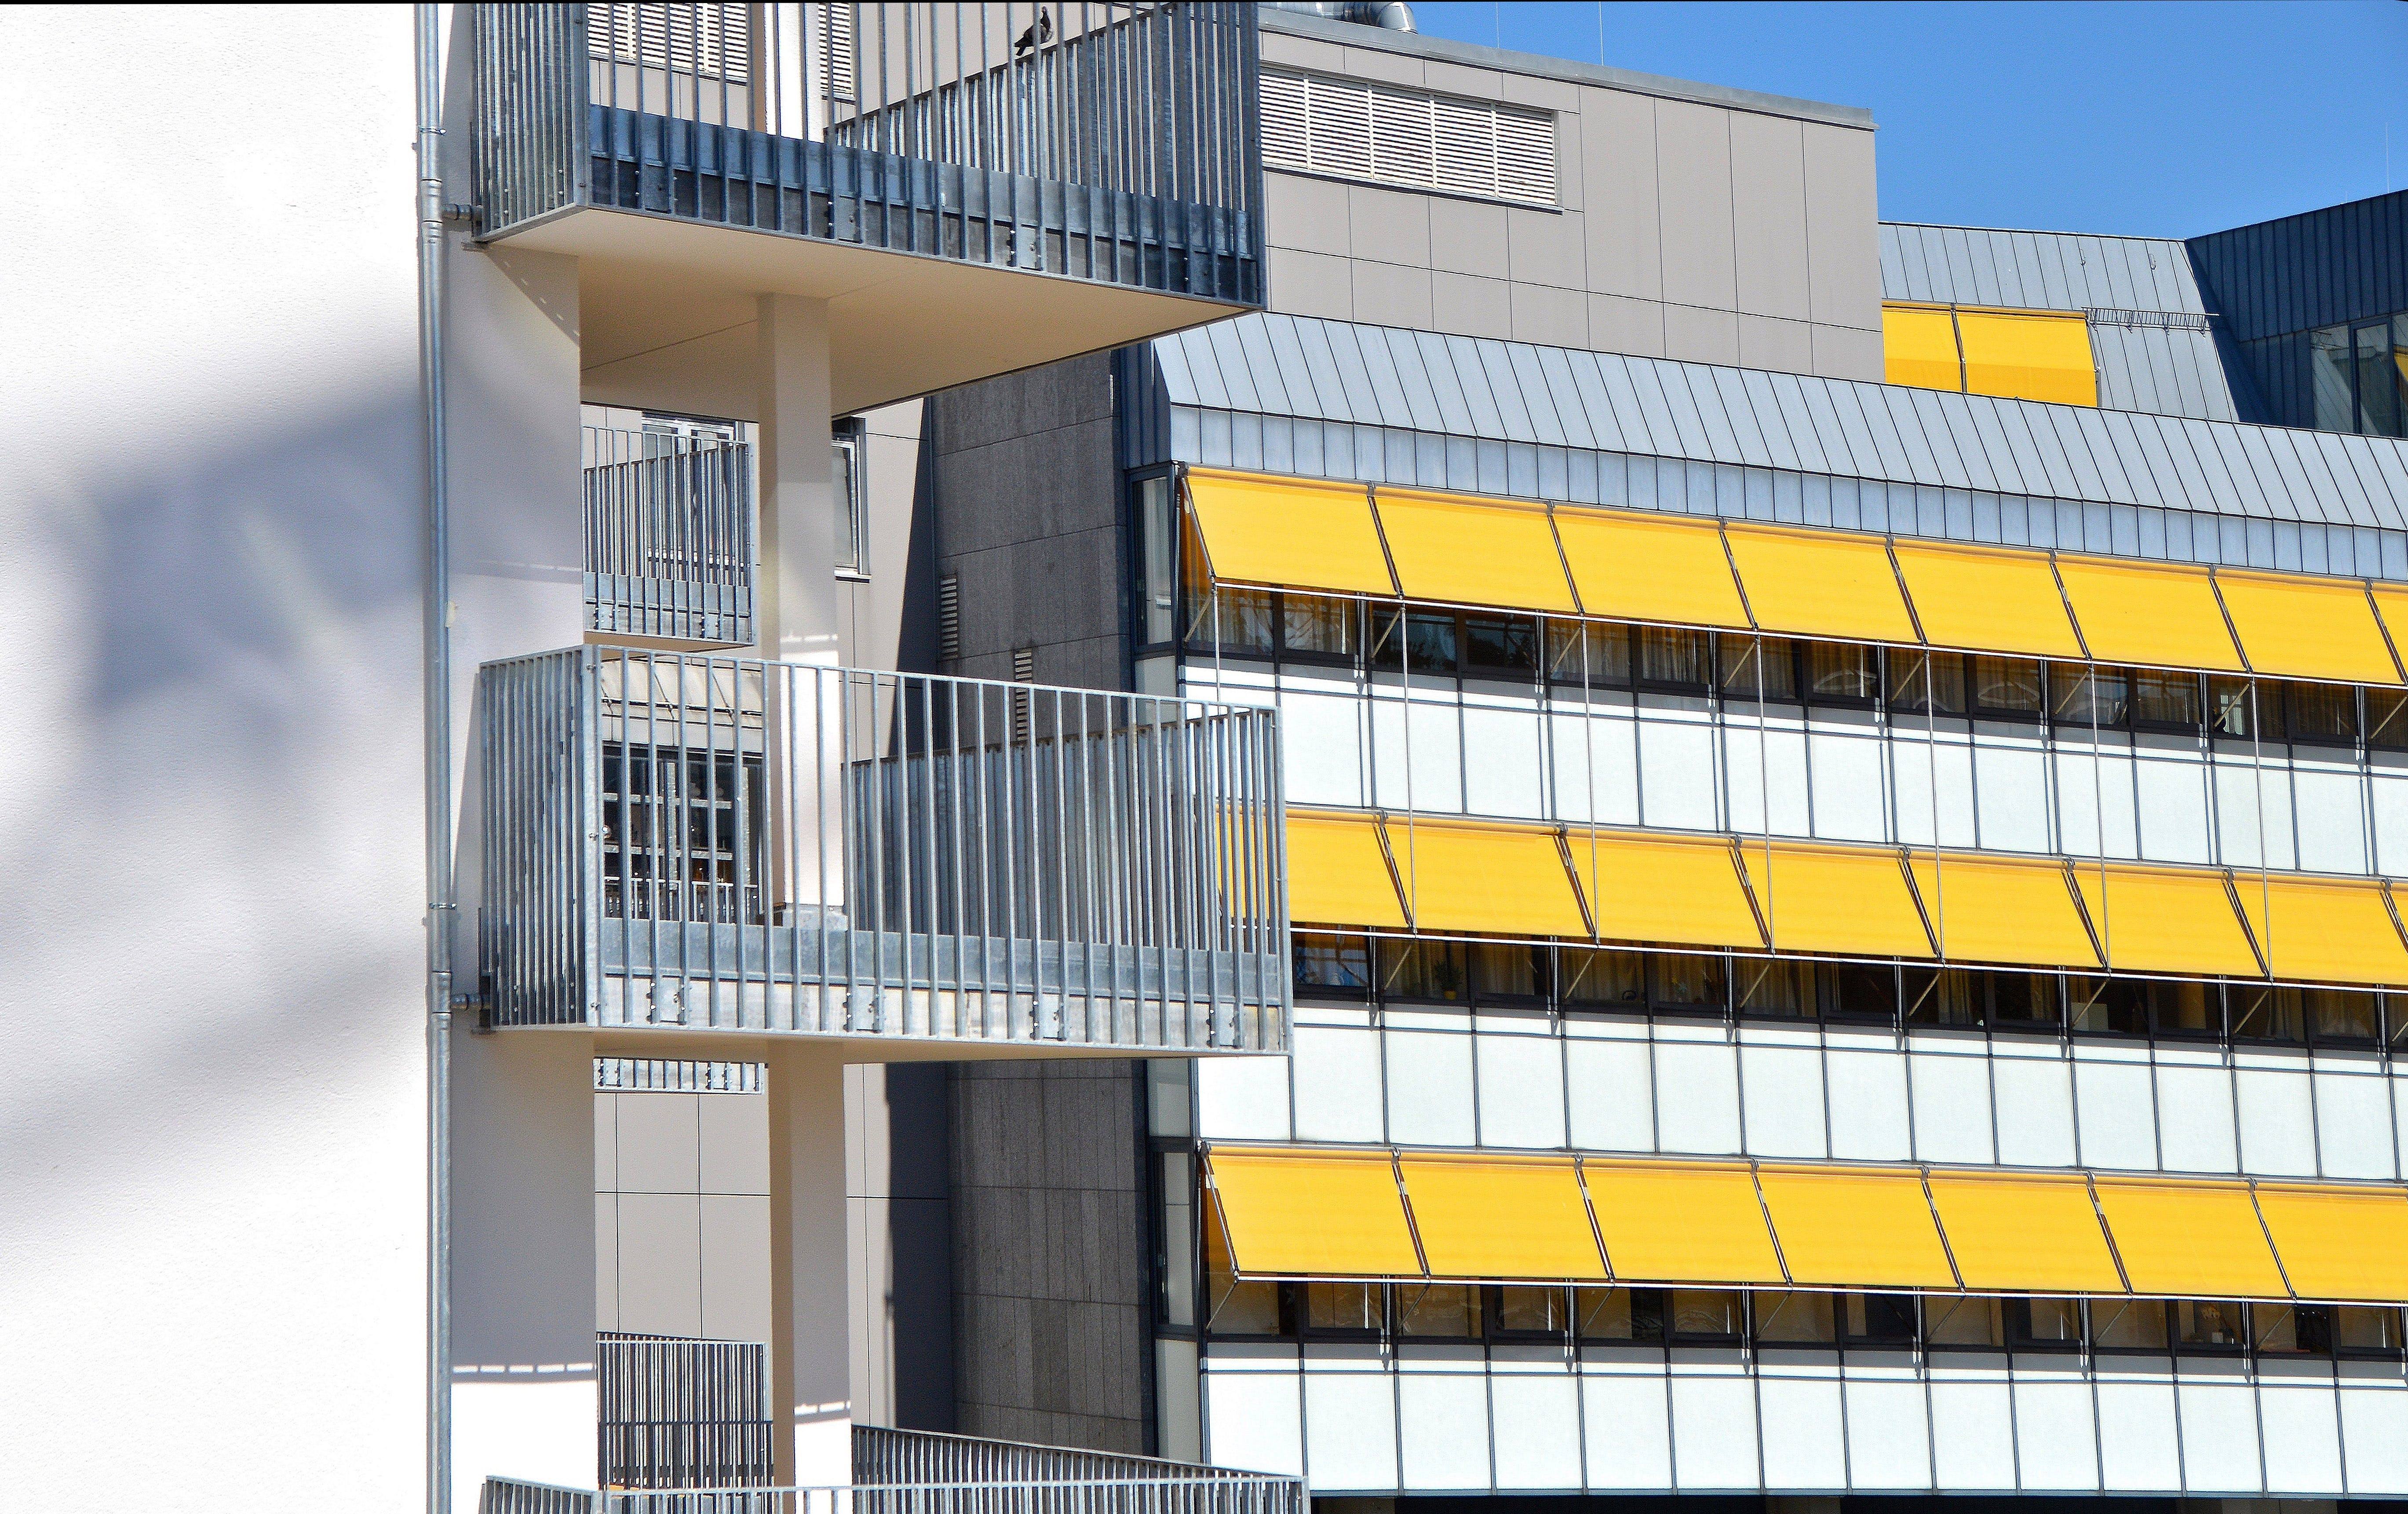 Free stock photo of buildings, yellow, glass, architecture